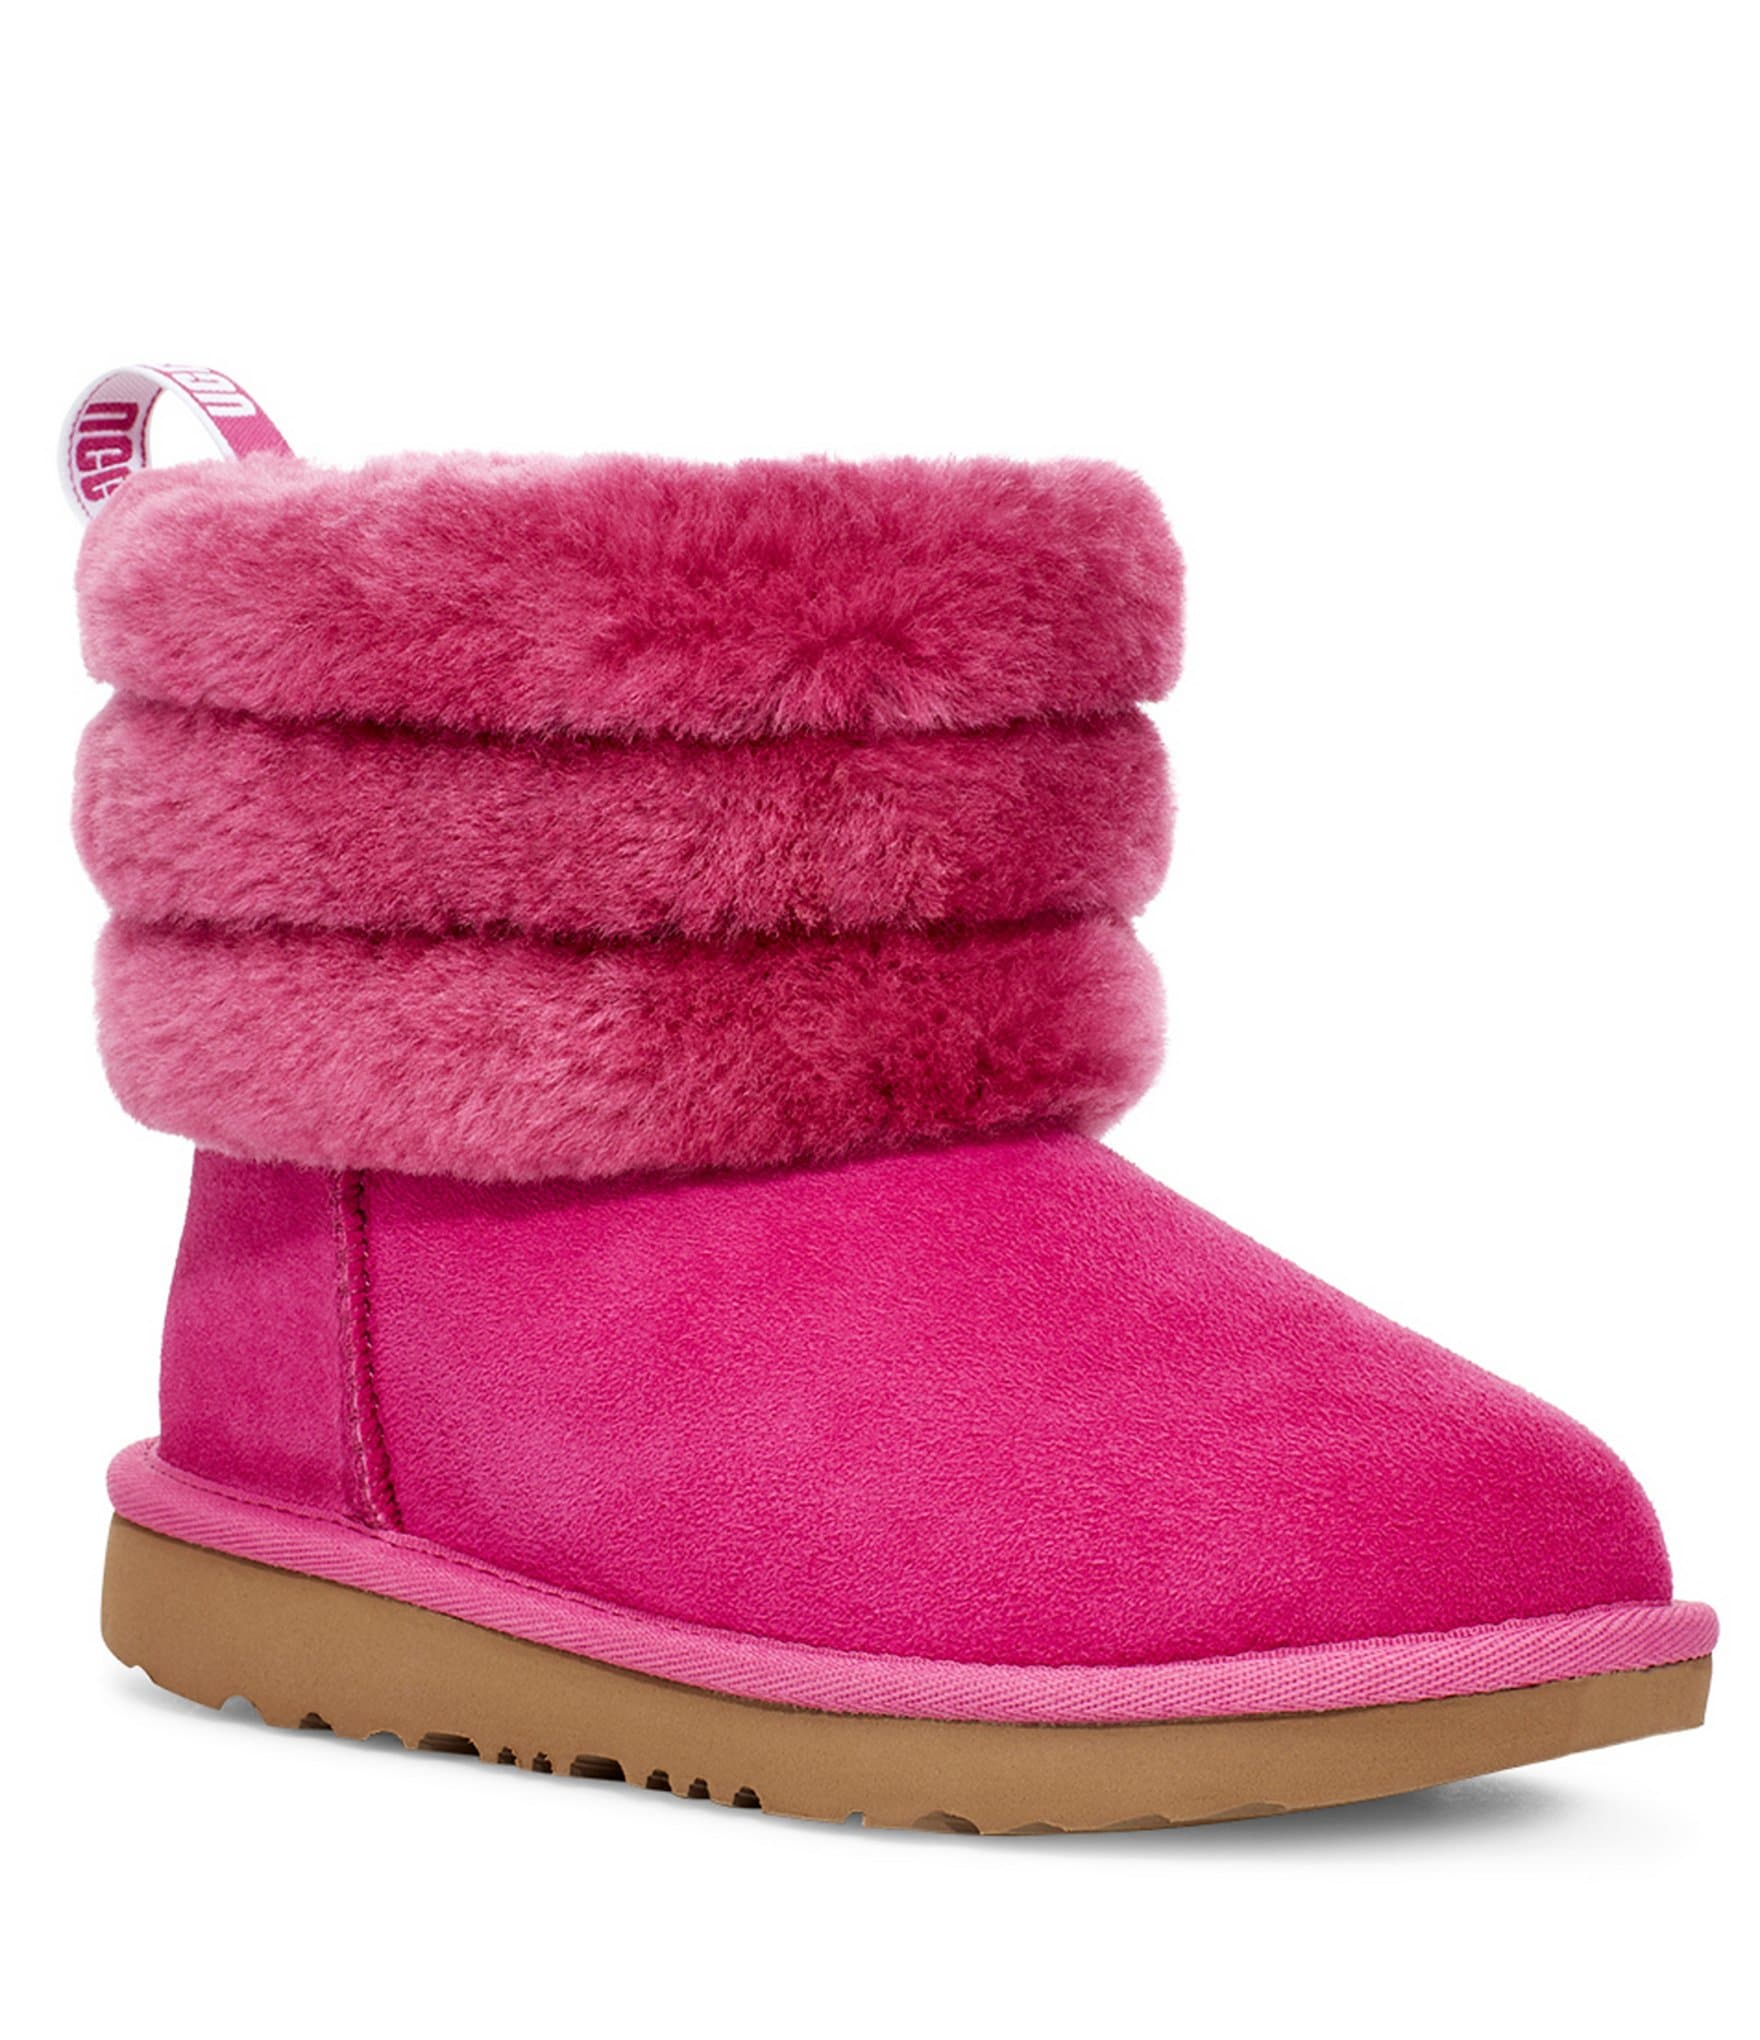 42f92a6207d UGG Girls' Fluff Mini Quilted